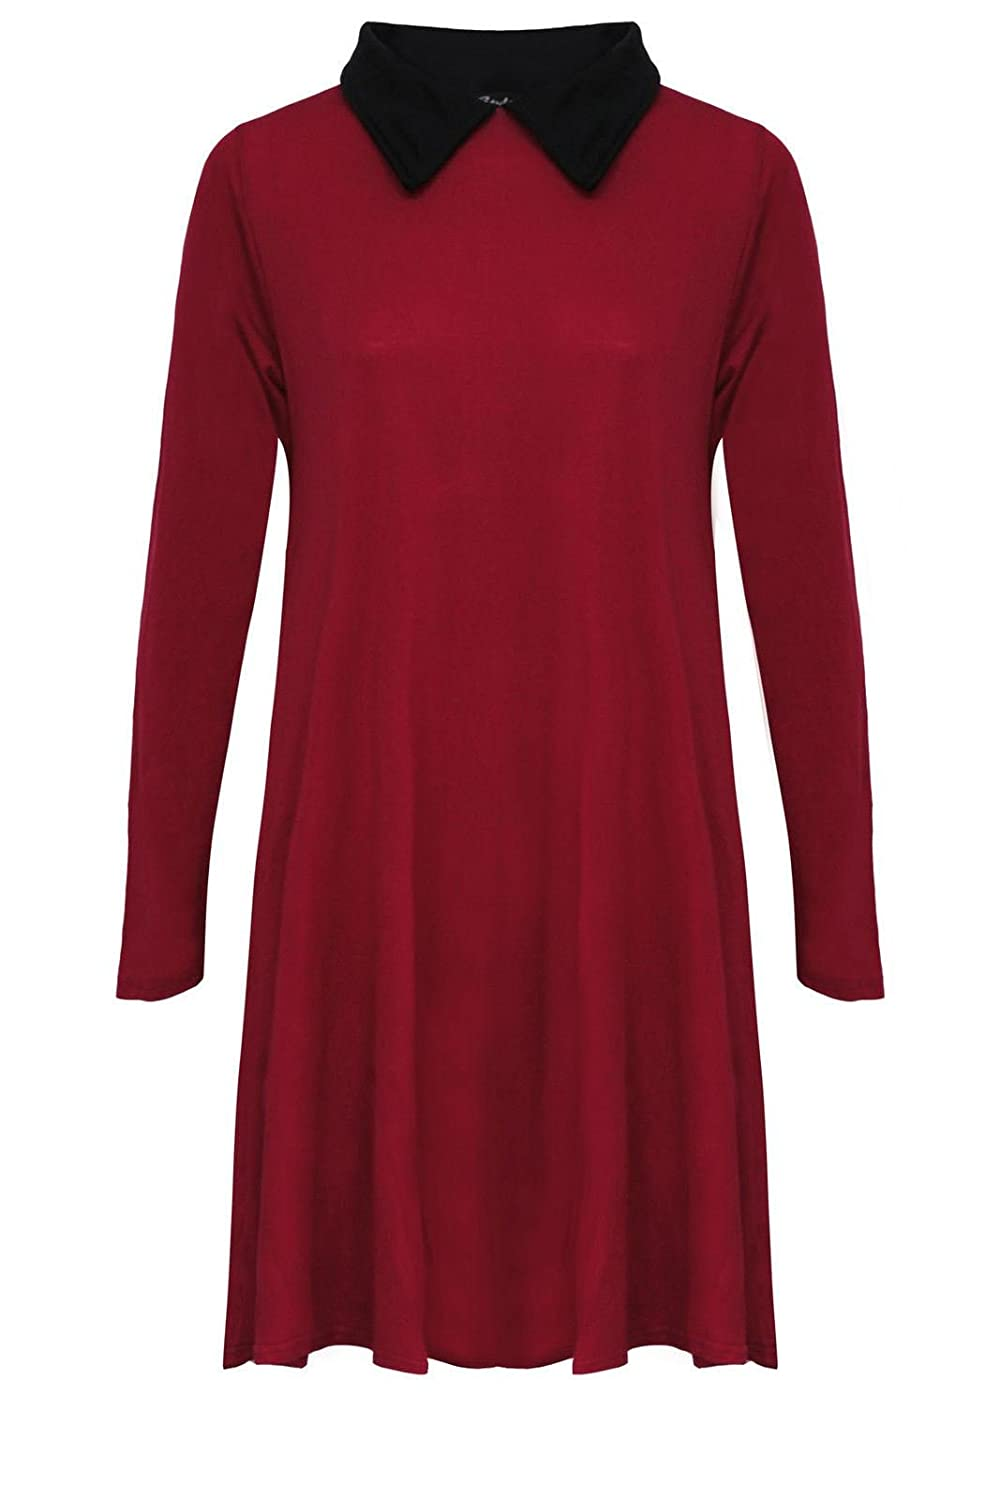 Riddled With Style ® New Womens Long Sleeve Plus Size Peter pan Collar Swing Dress. UK 8-26 FASHION FAIRIES